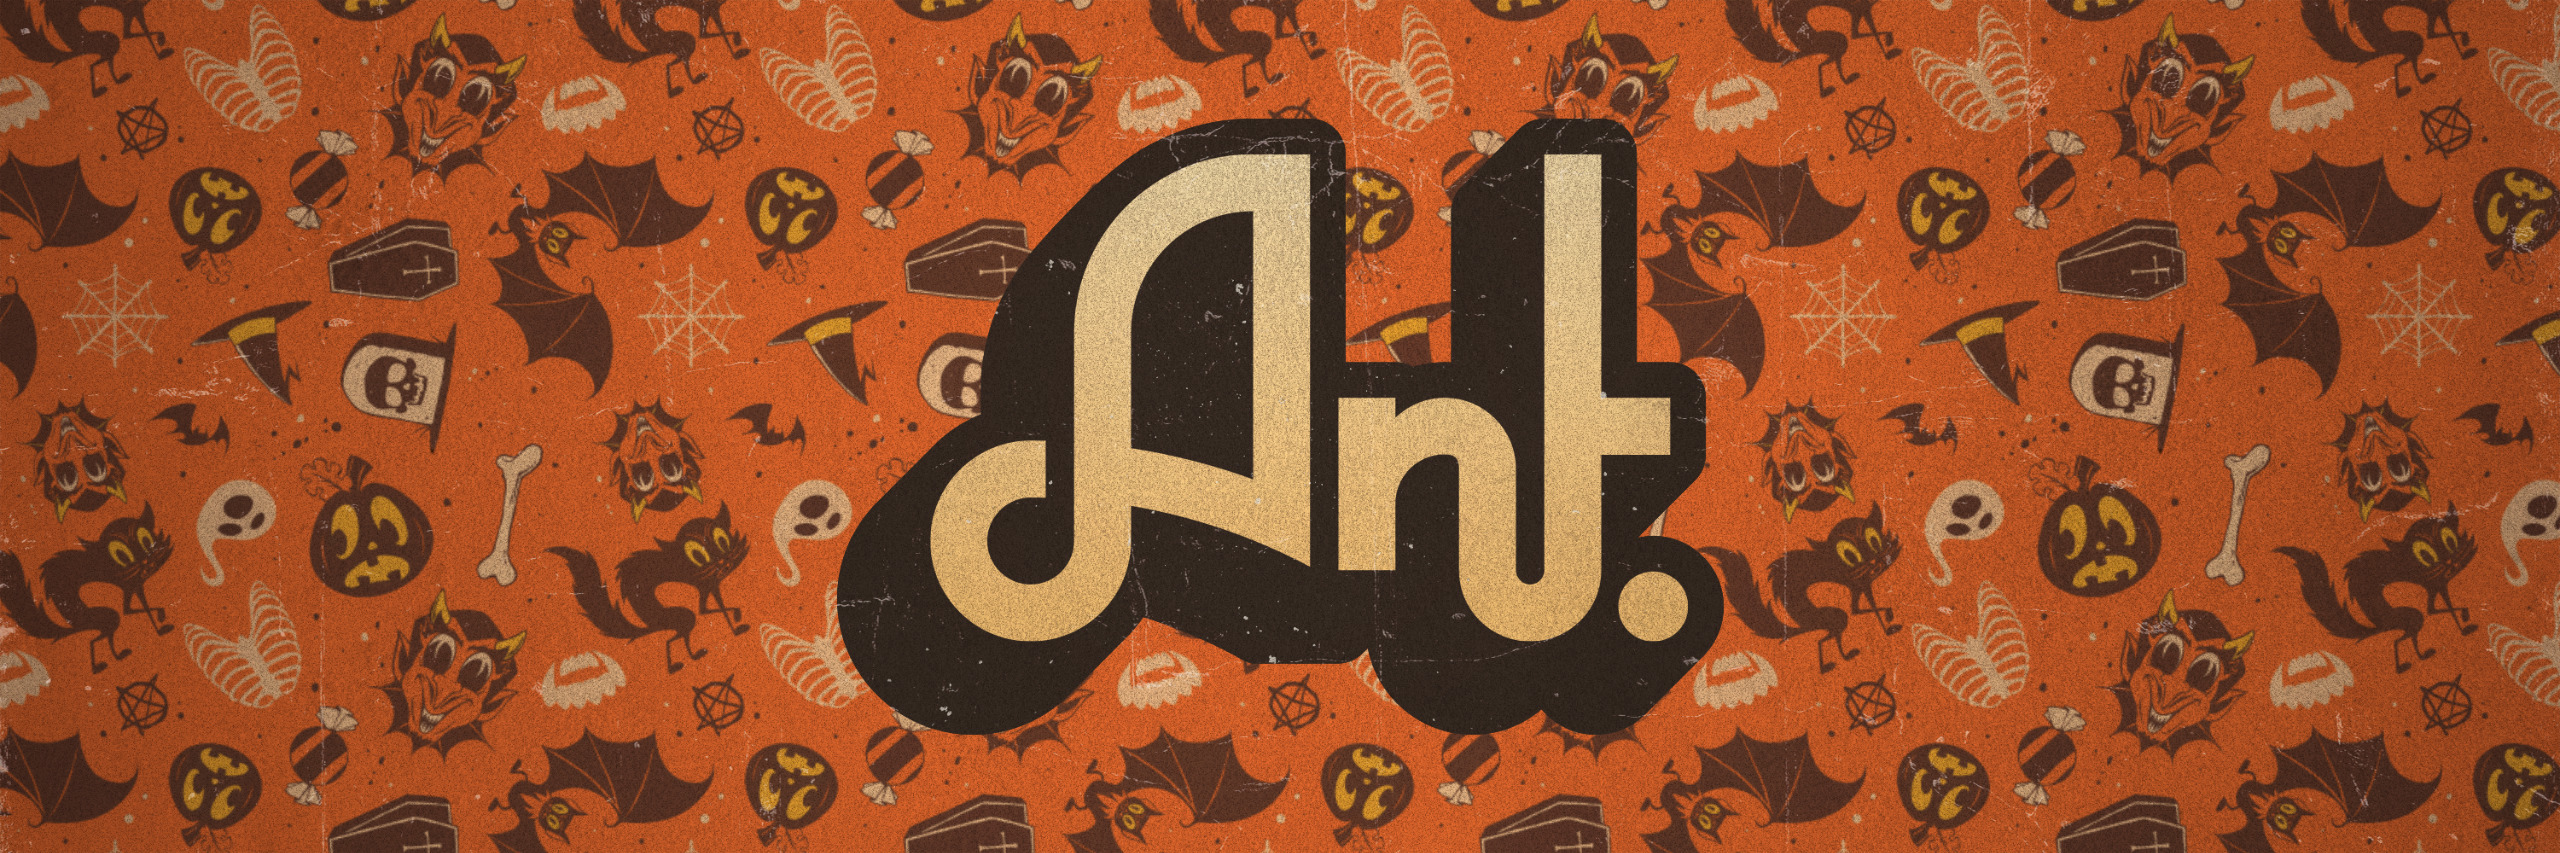 Ant (@antscribbles) Cover Image